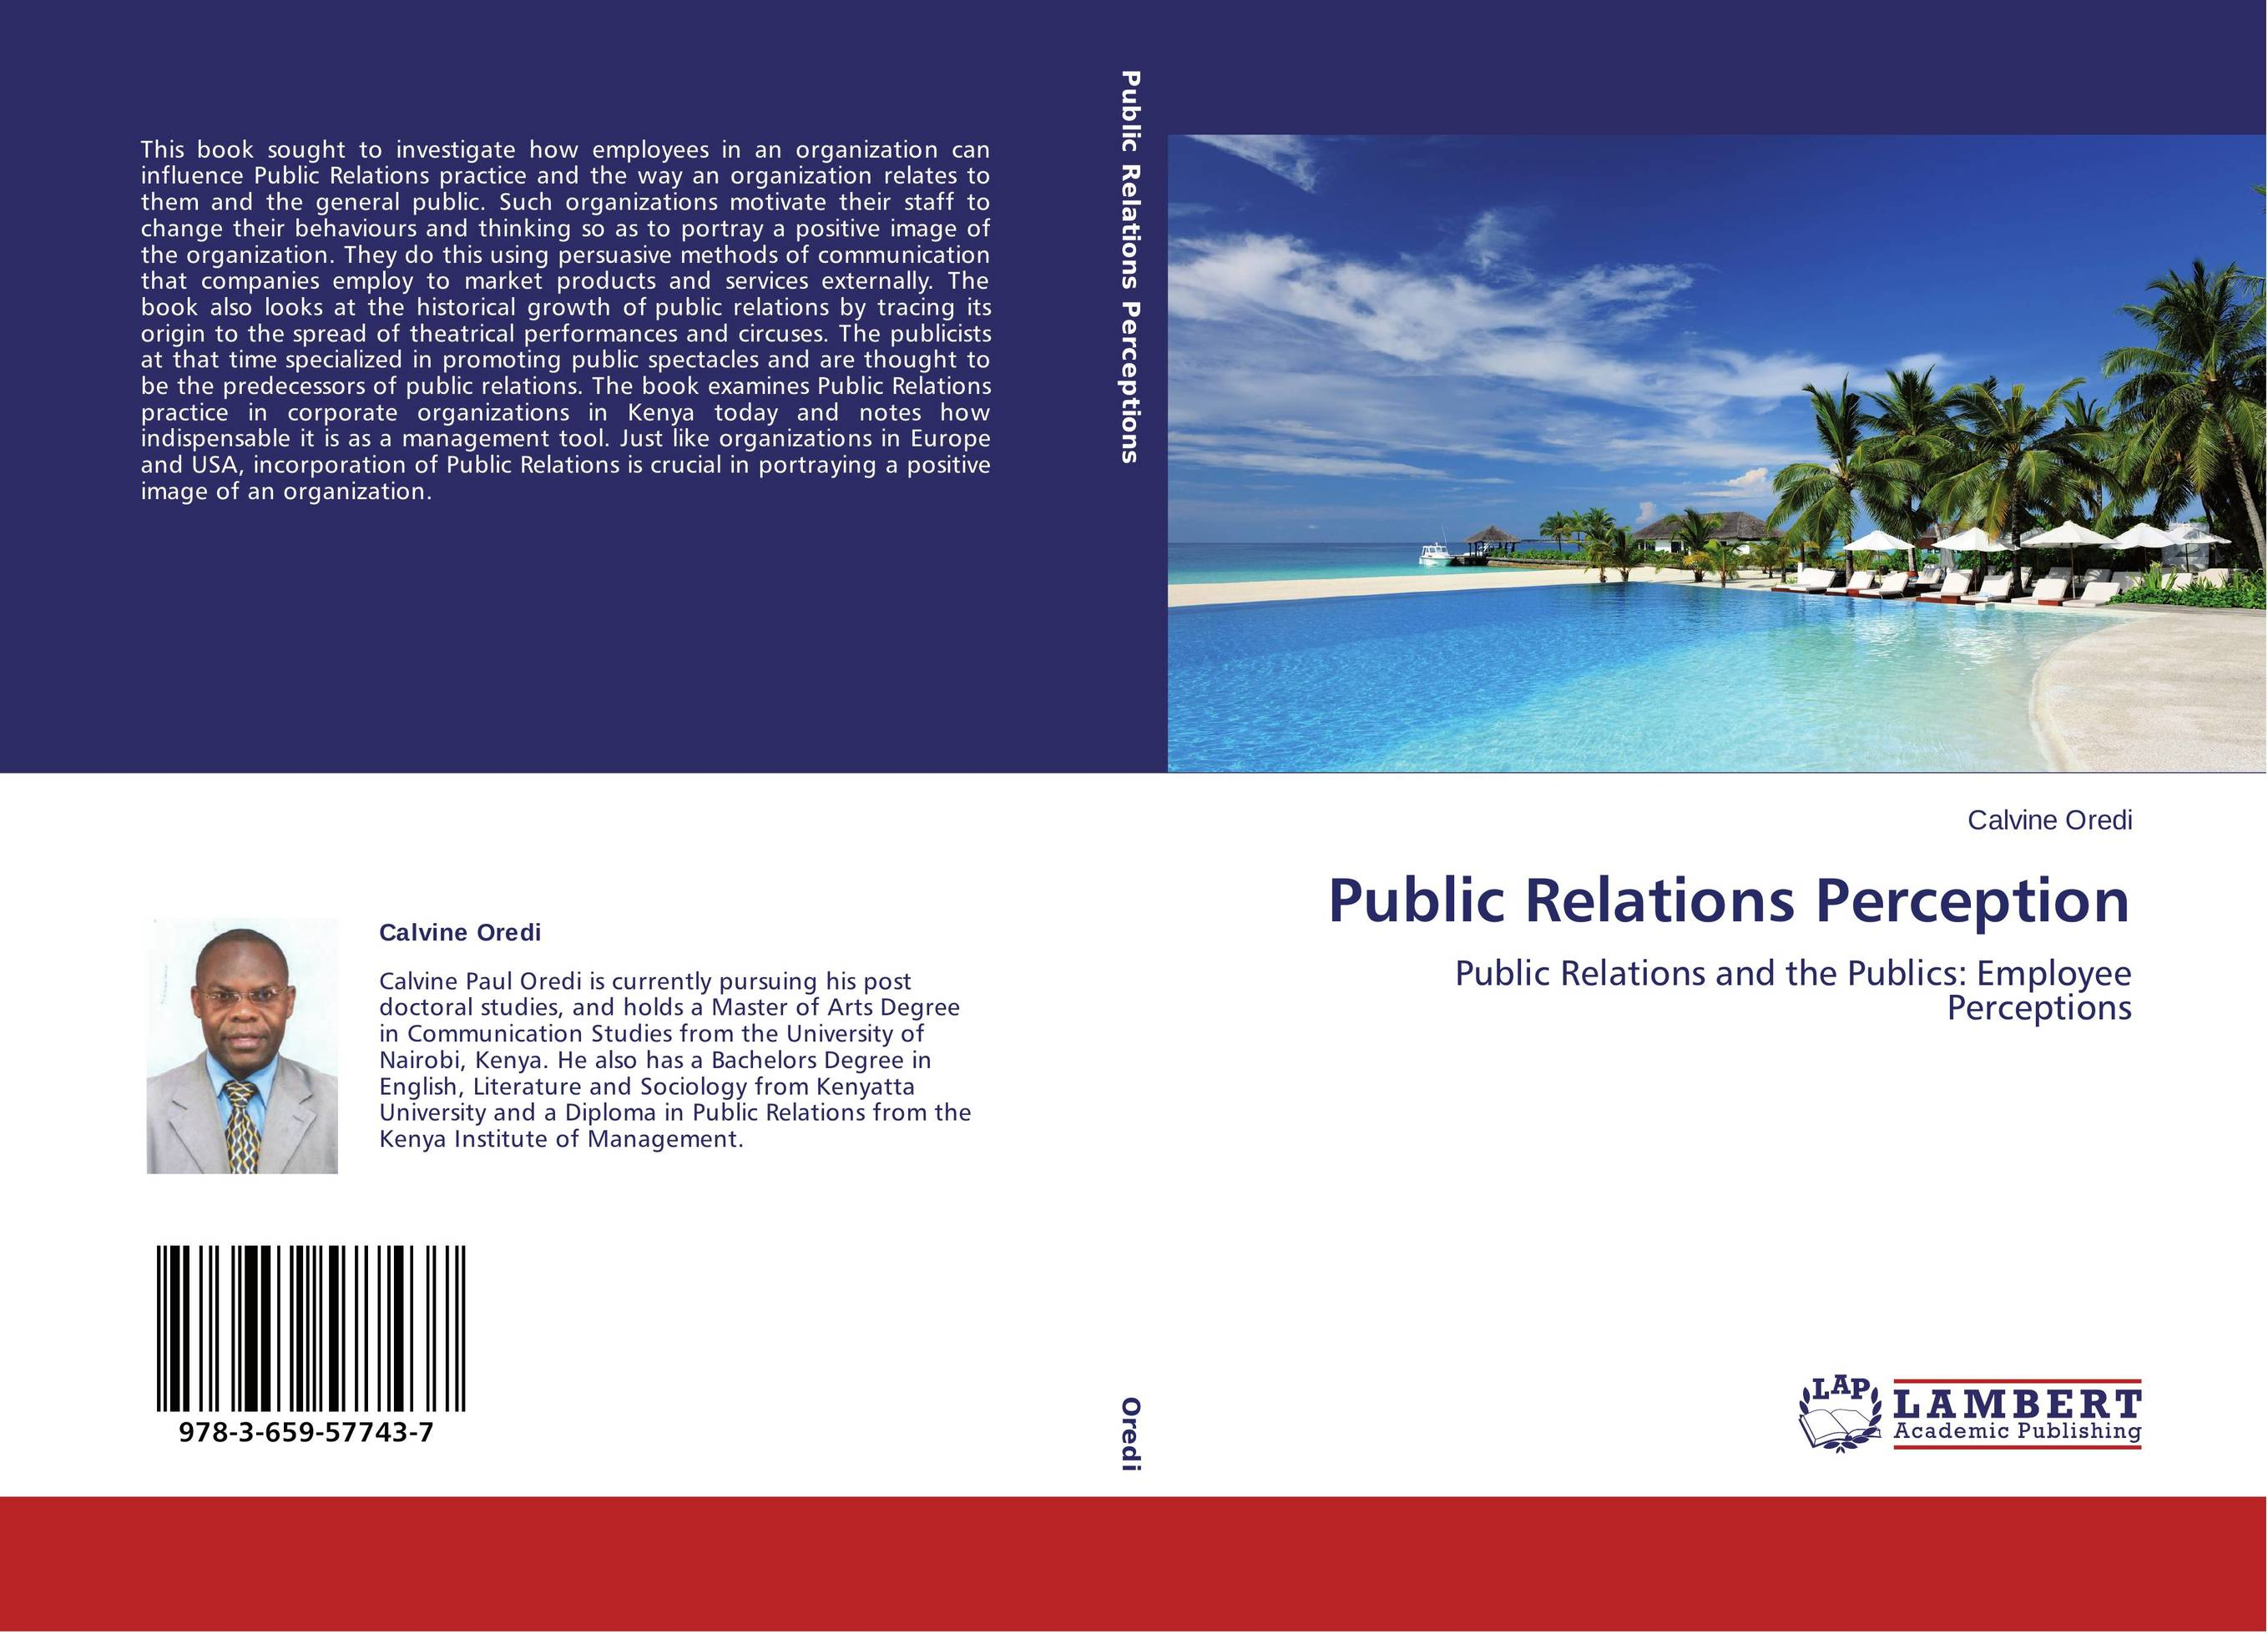 the introduction of professionalism in public relations and its importance in the modern organizatio A publicist or public relations officer will influence the public's perception of things to work in the favour or the business or organization public relations ensures that people see the business or organization in a particular way that is in line with the organization's objectives.